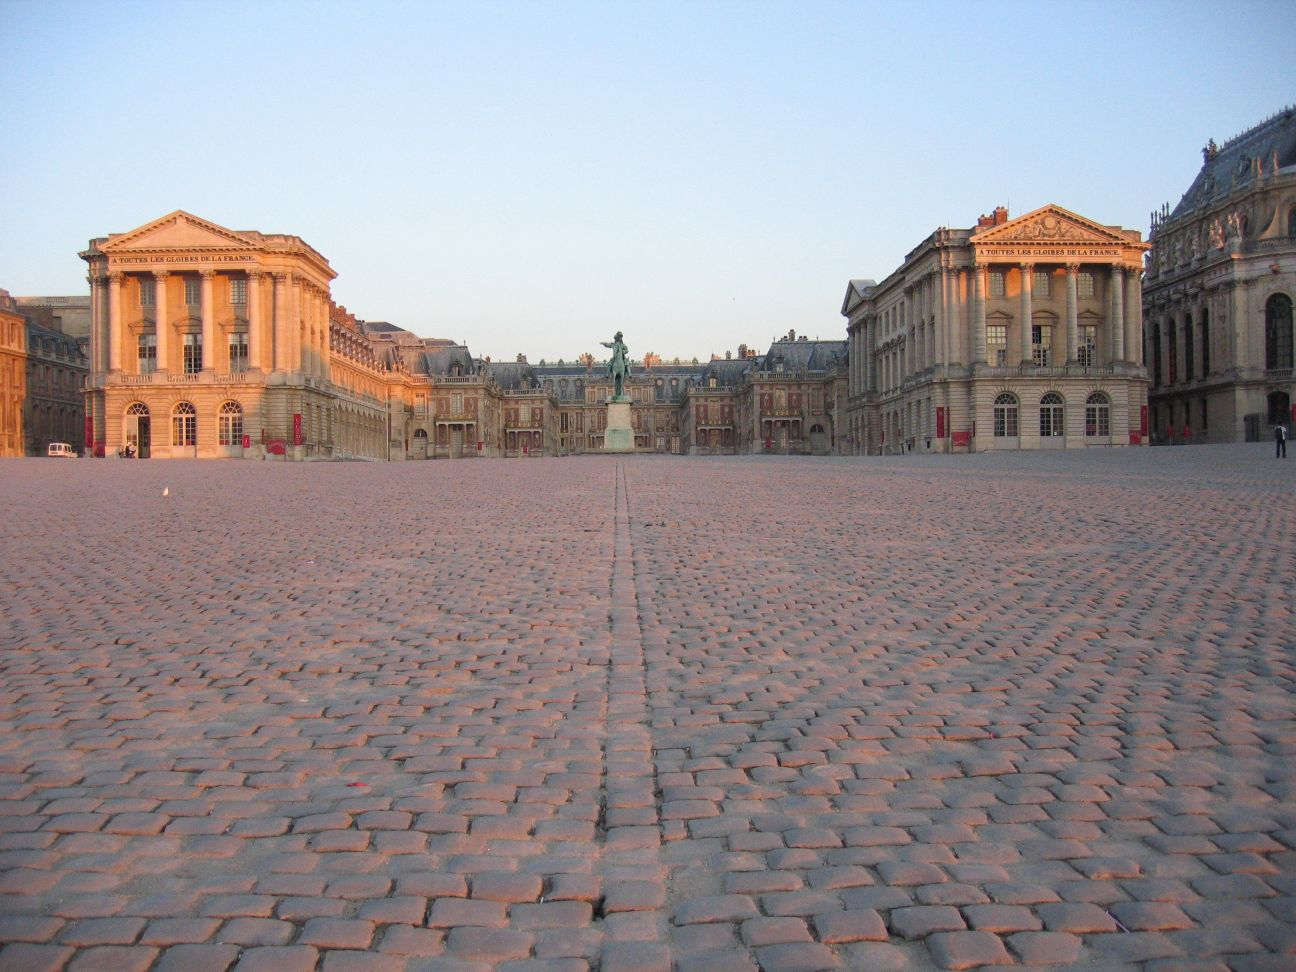 Chateau de Versailles early morning